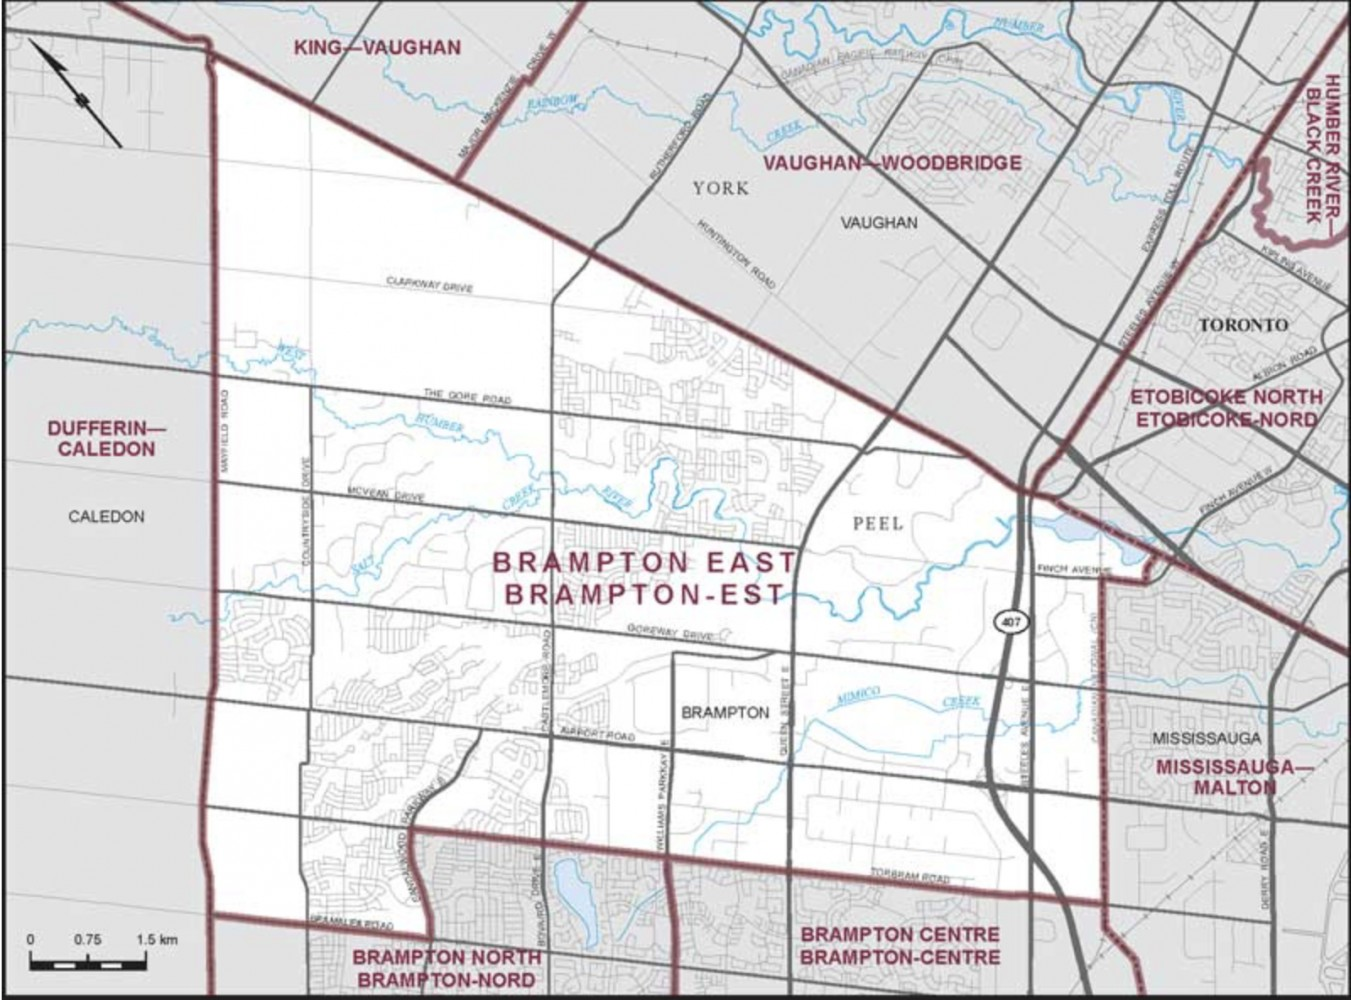 Tens of thousands of voters in Brampton East have not received voter information cards